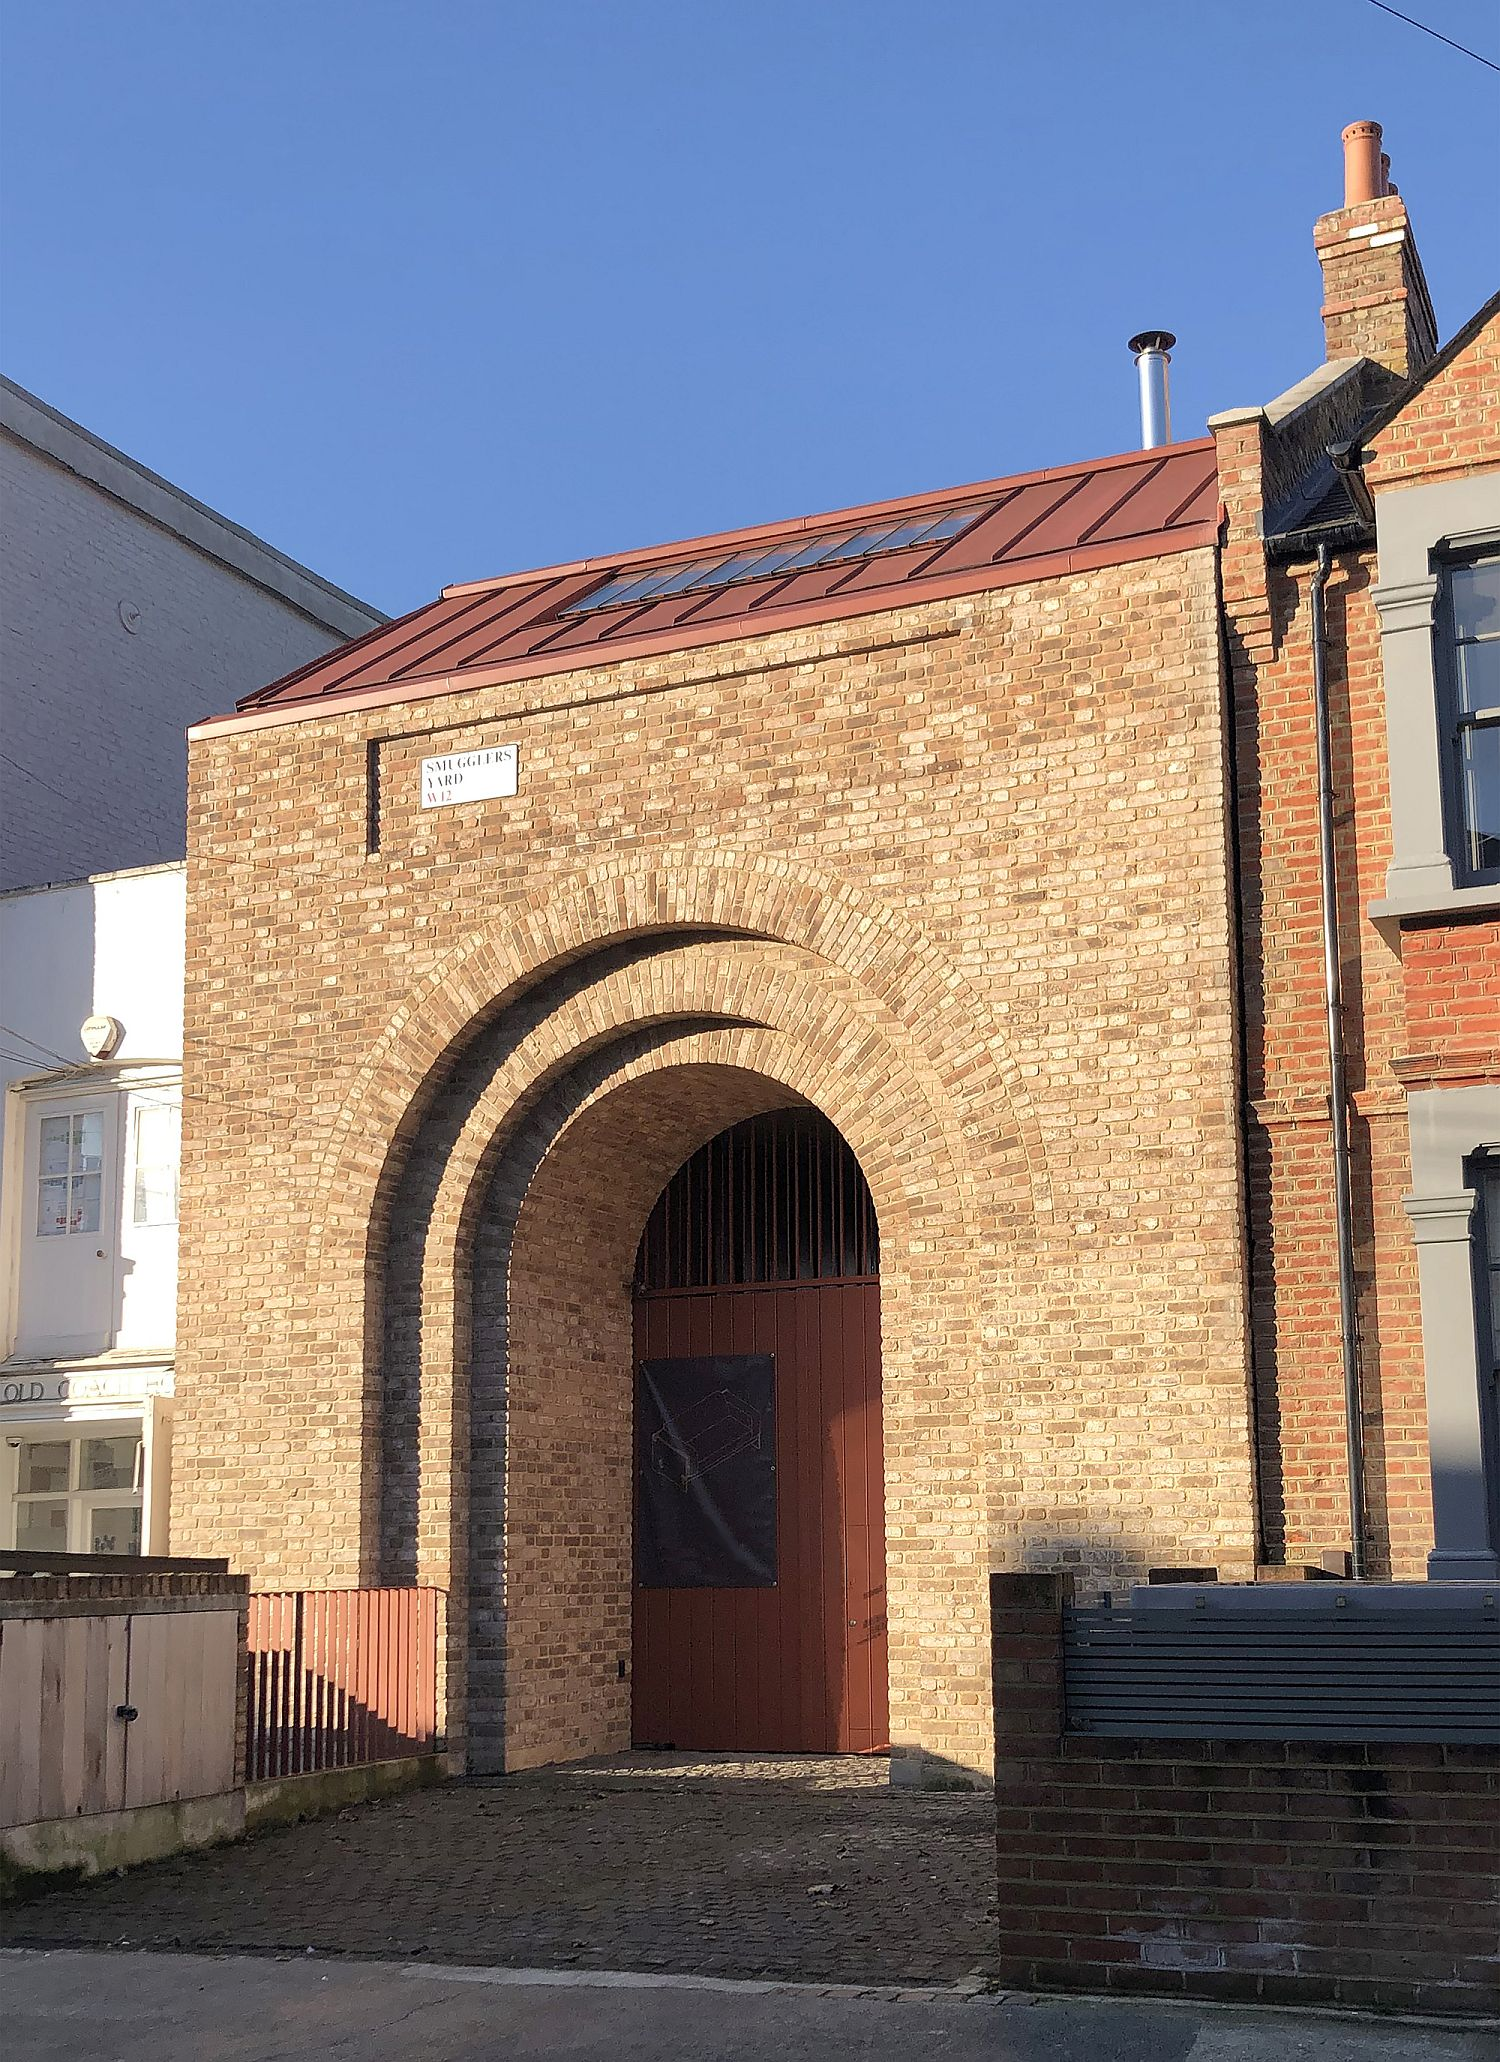 Brick archway welcomes you at this gorgeous British home